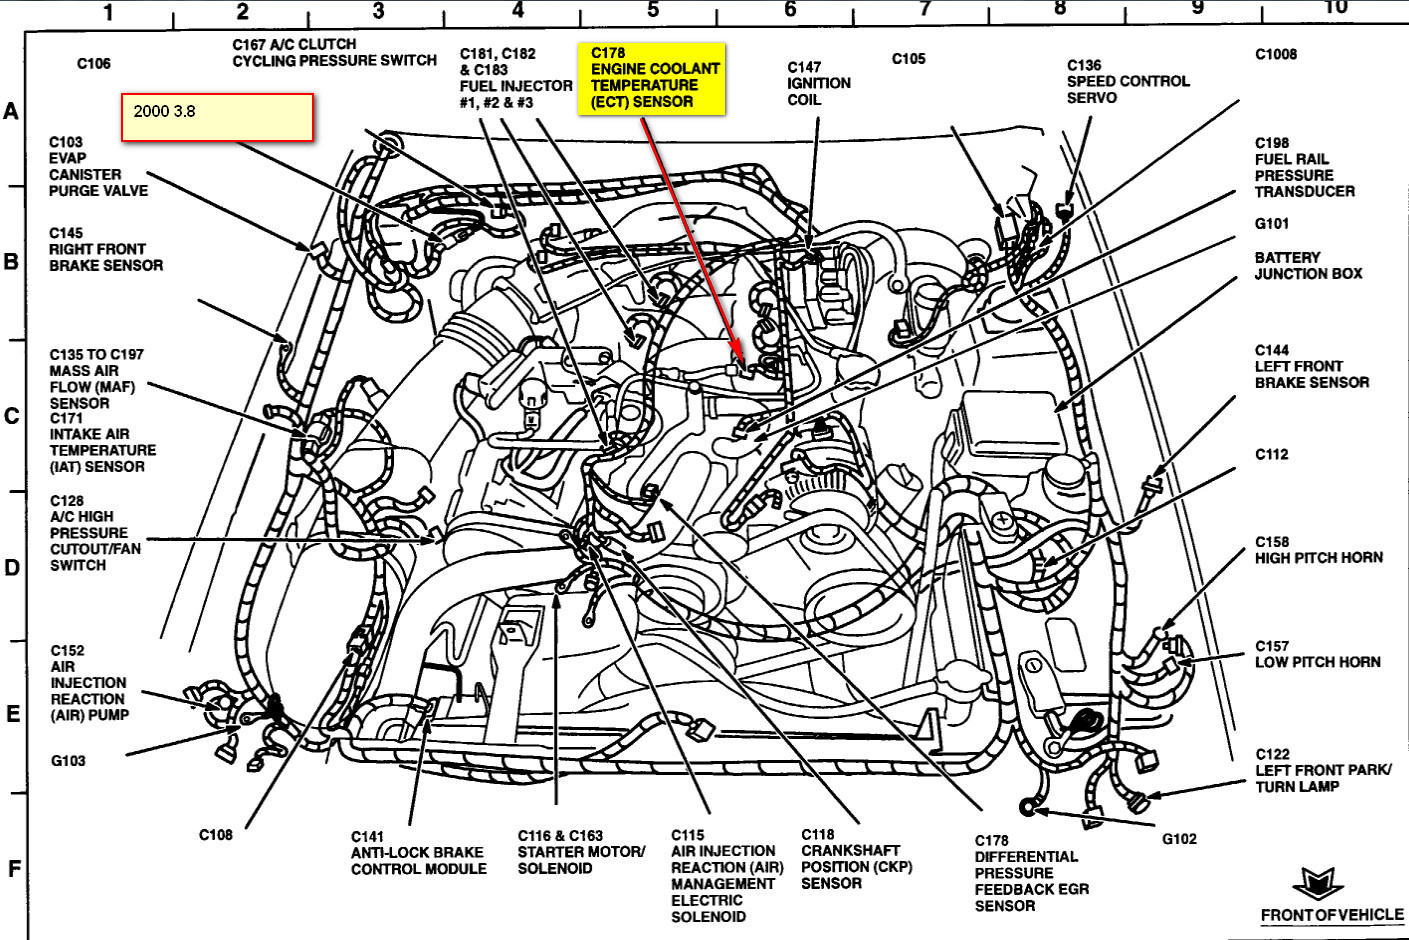 Ford Focus Under Hood Diagram also 16v Zetec Engine Diagram also Drl furthermore Discussion T39672 ds551250 together with 426540 Transit Connect Immobiliser. on fuse box ford fiesta 2008